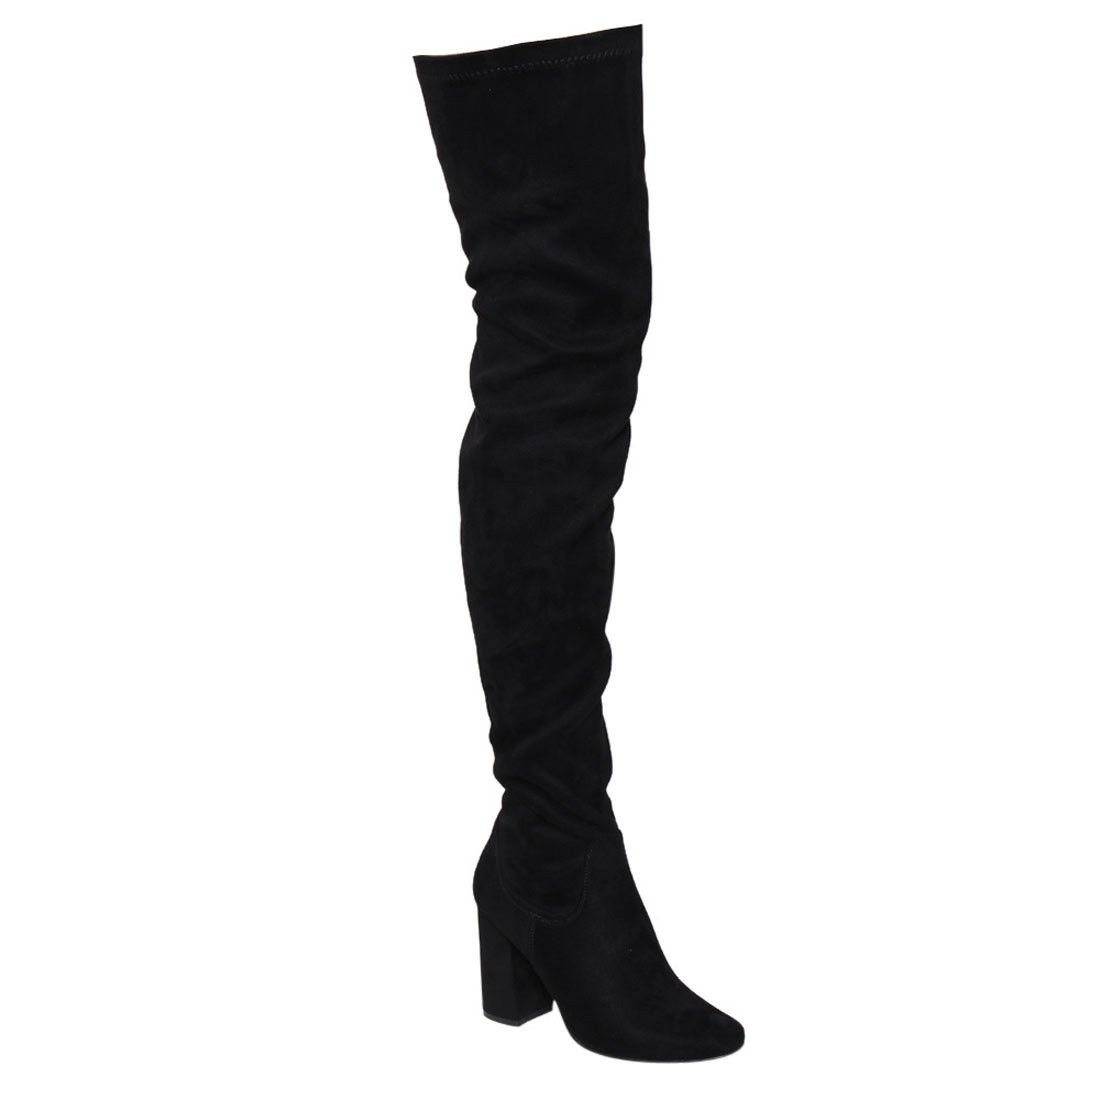 ShoBeautiful Women's Thigh High Boots Stretchy Side Zipper Over The Knee Chunky Block Stiletto Heel Boots Black 9